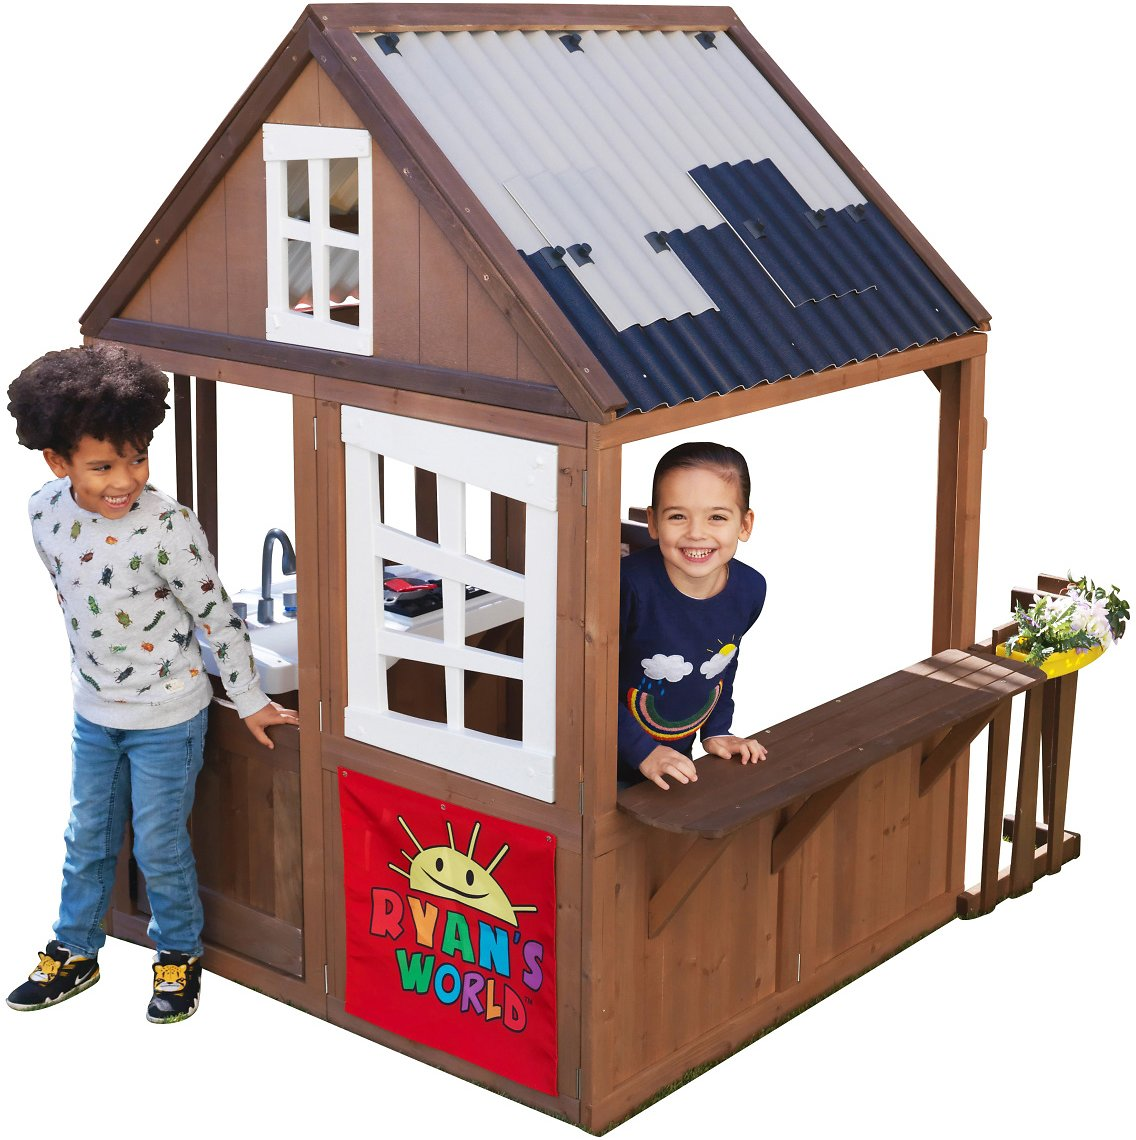 KidKraft Ryans World Outdoor Playhouse + Ships Free